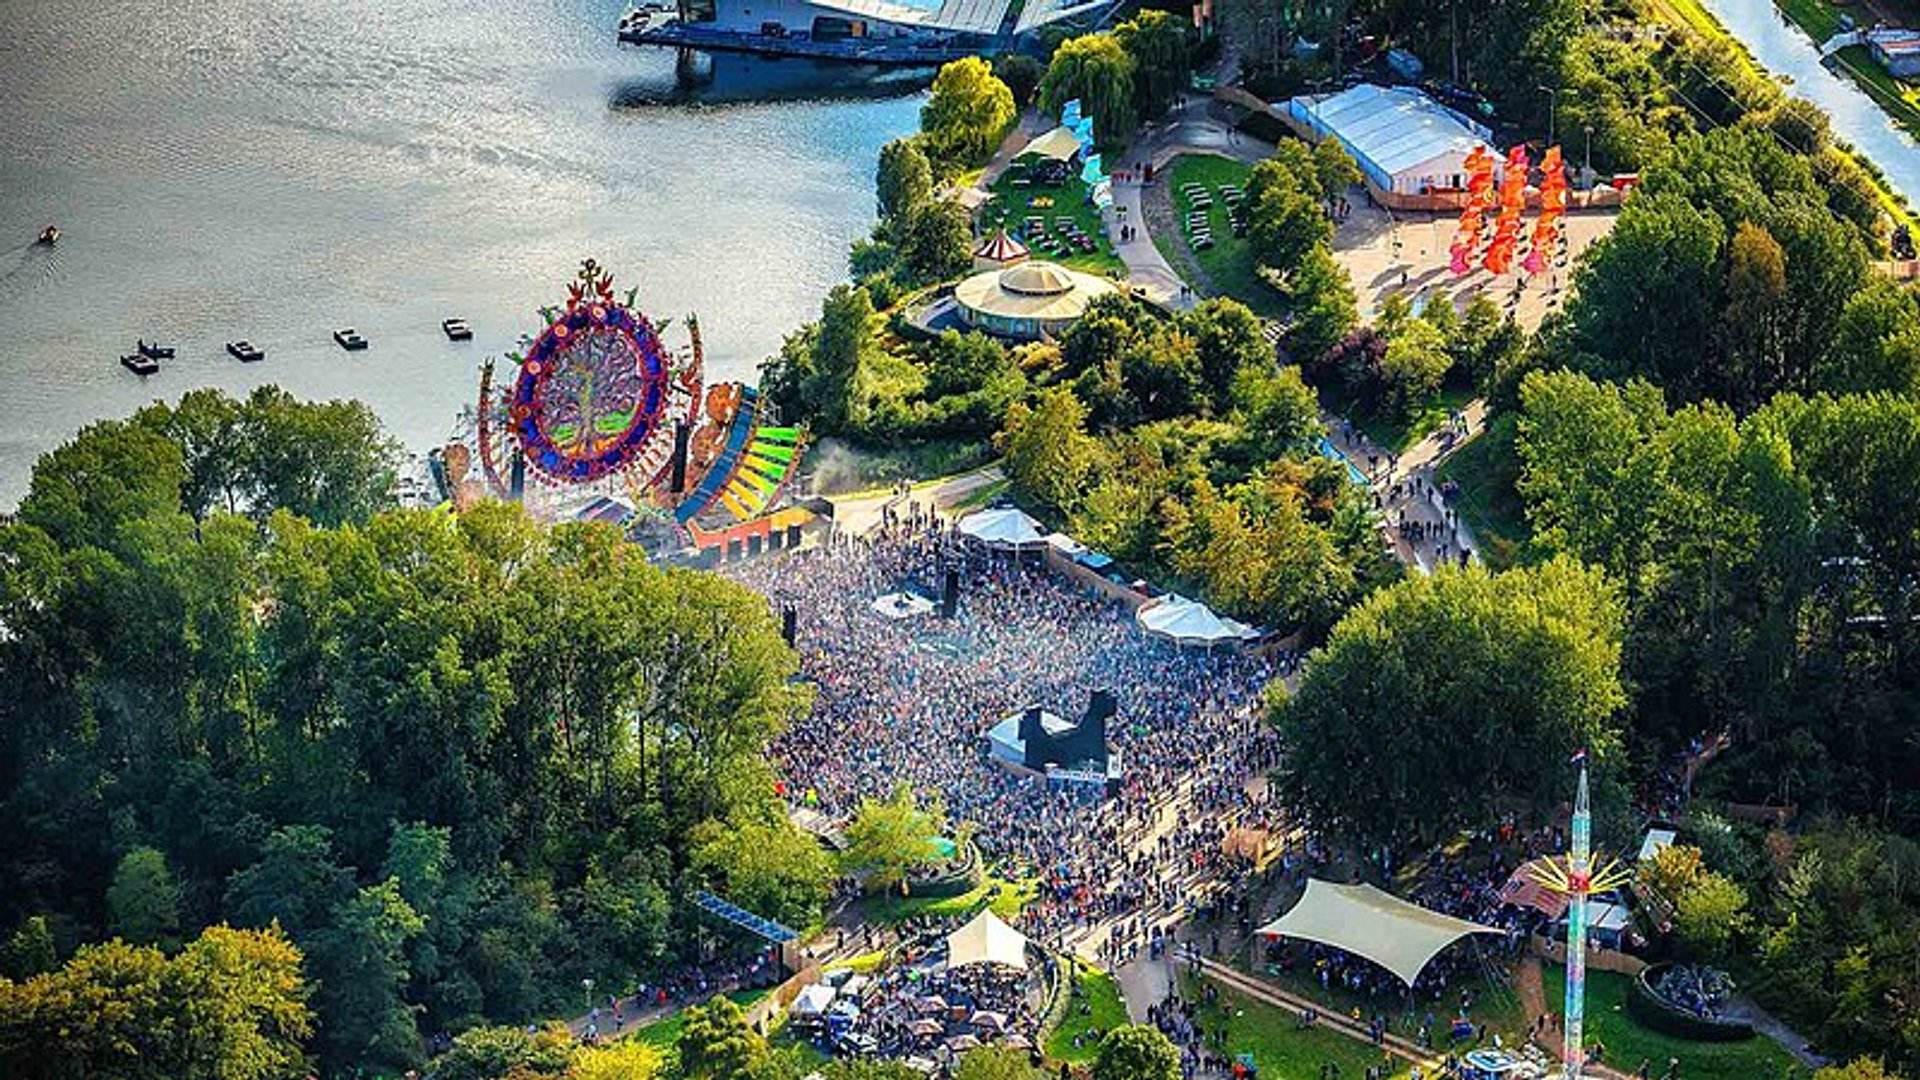 Mysteryland in The Netherlands - Best Season 2020